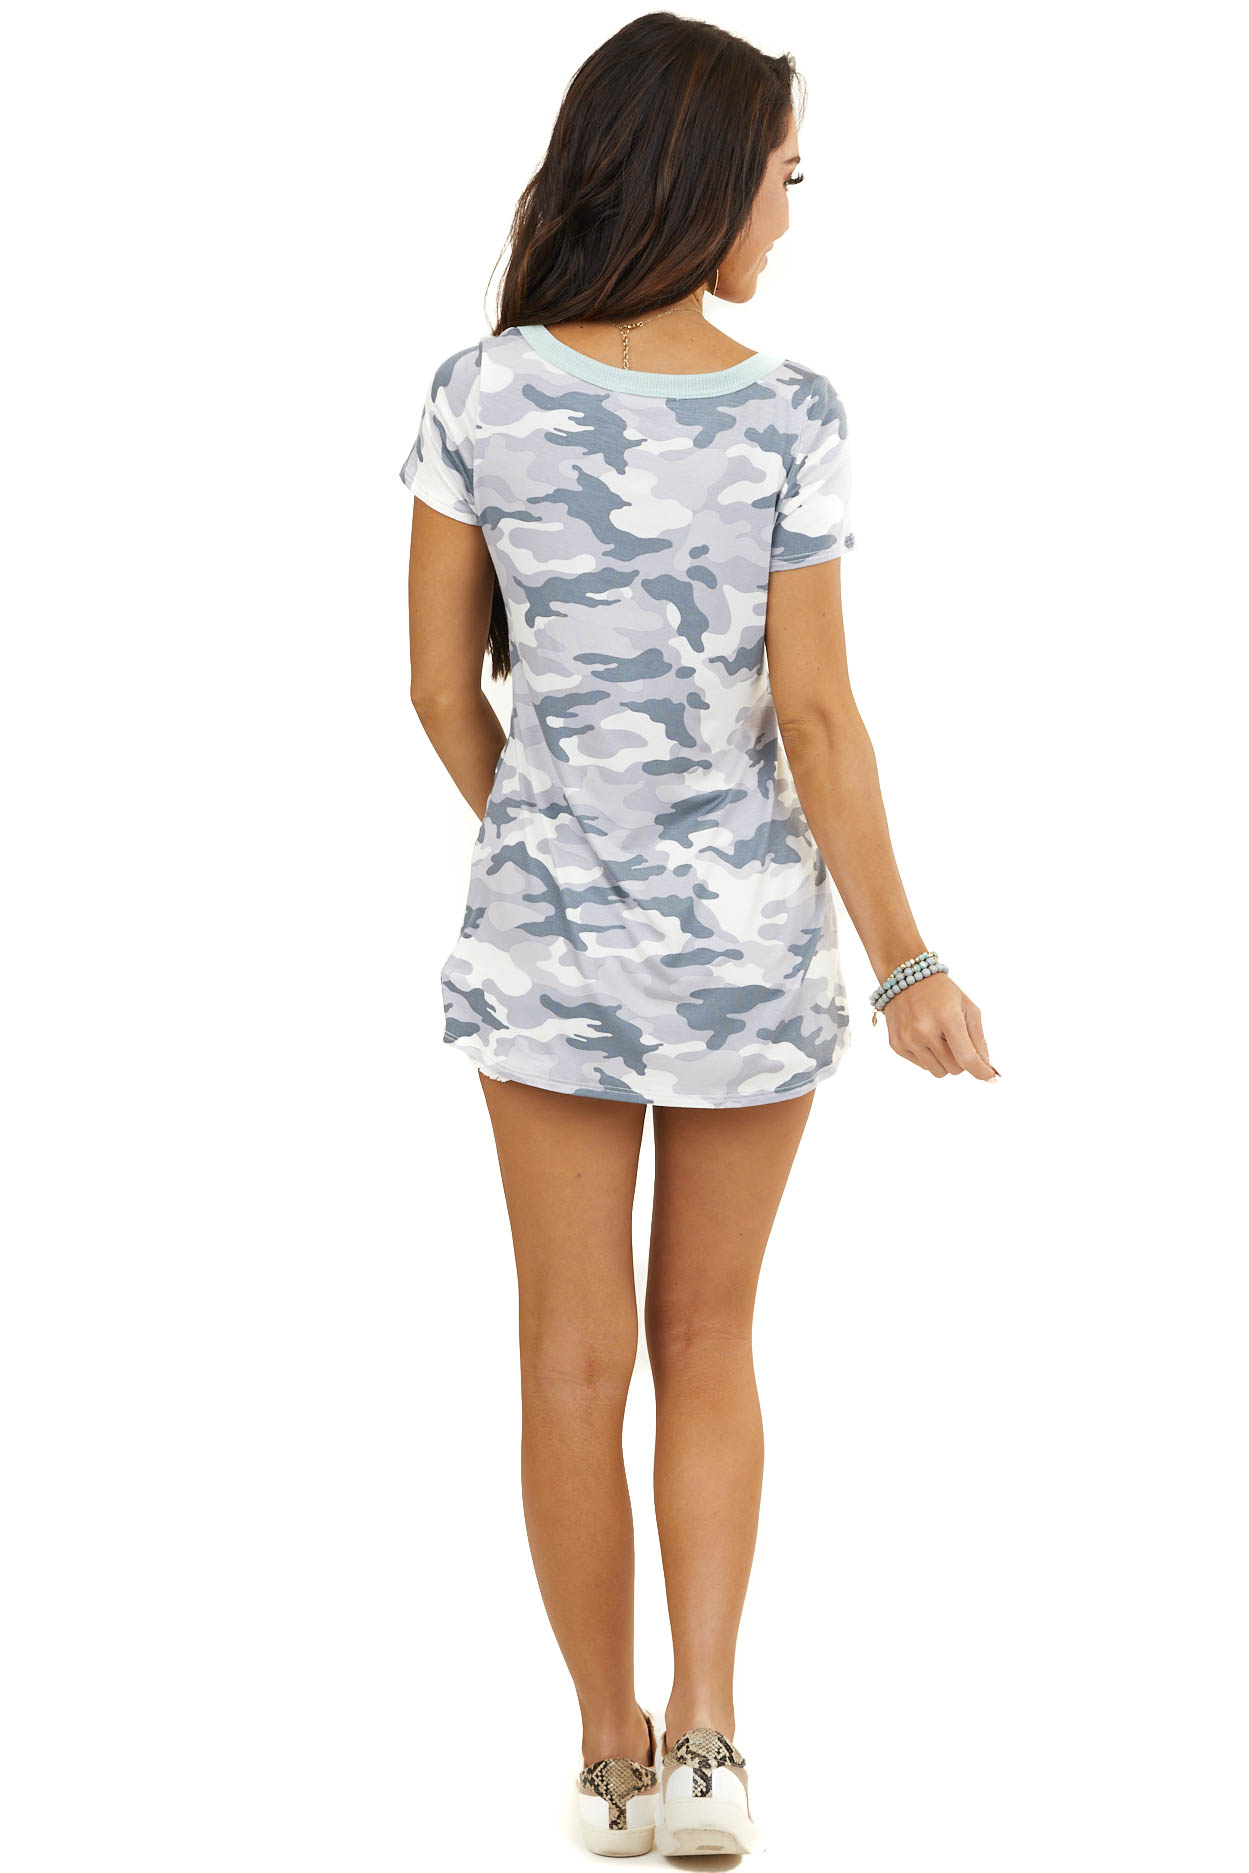 Dove Grey Camo Soft Short Sleeve Top with Mint Neckline